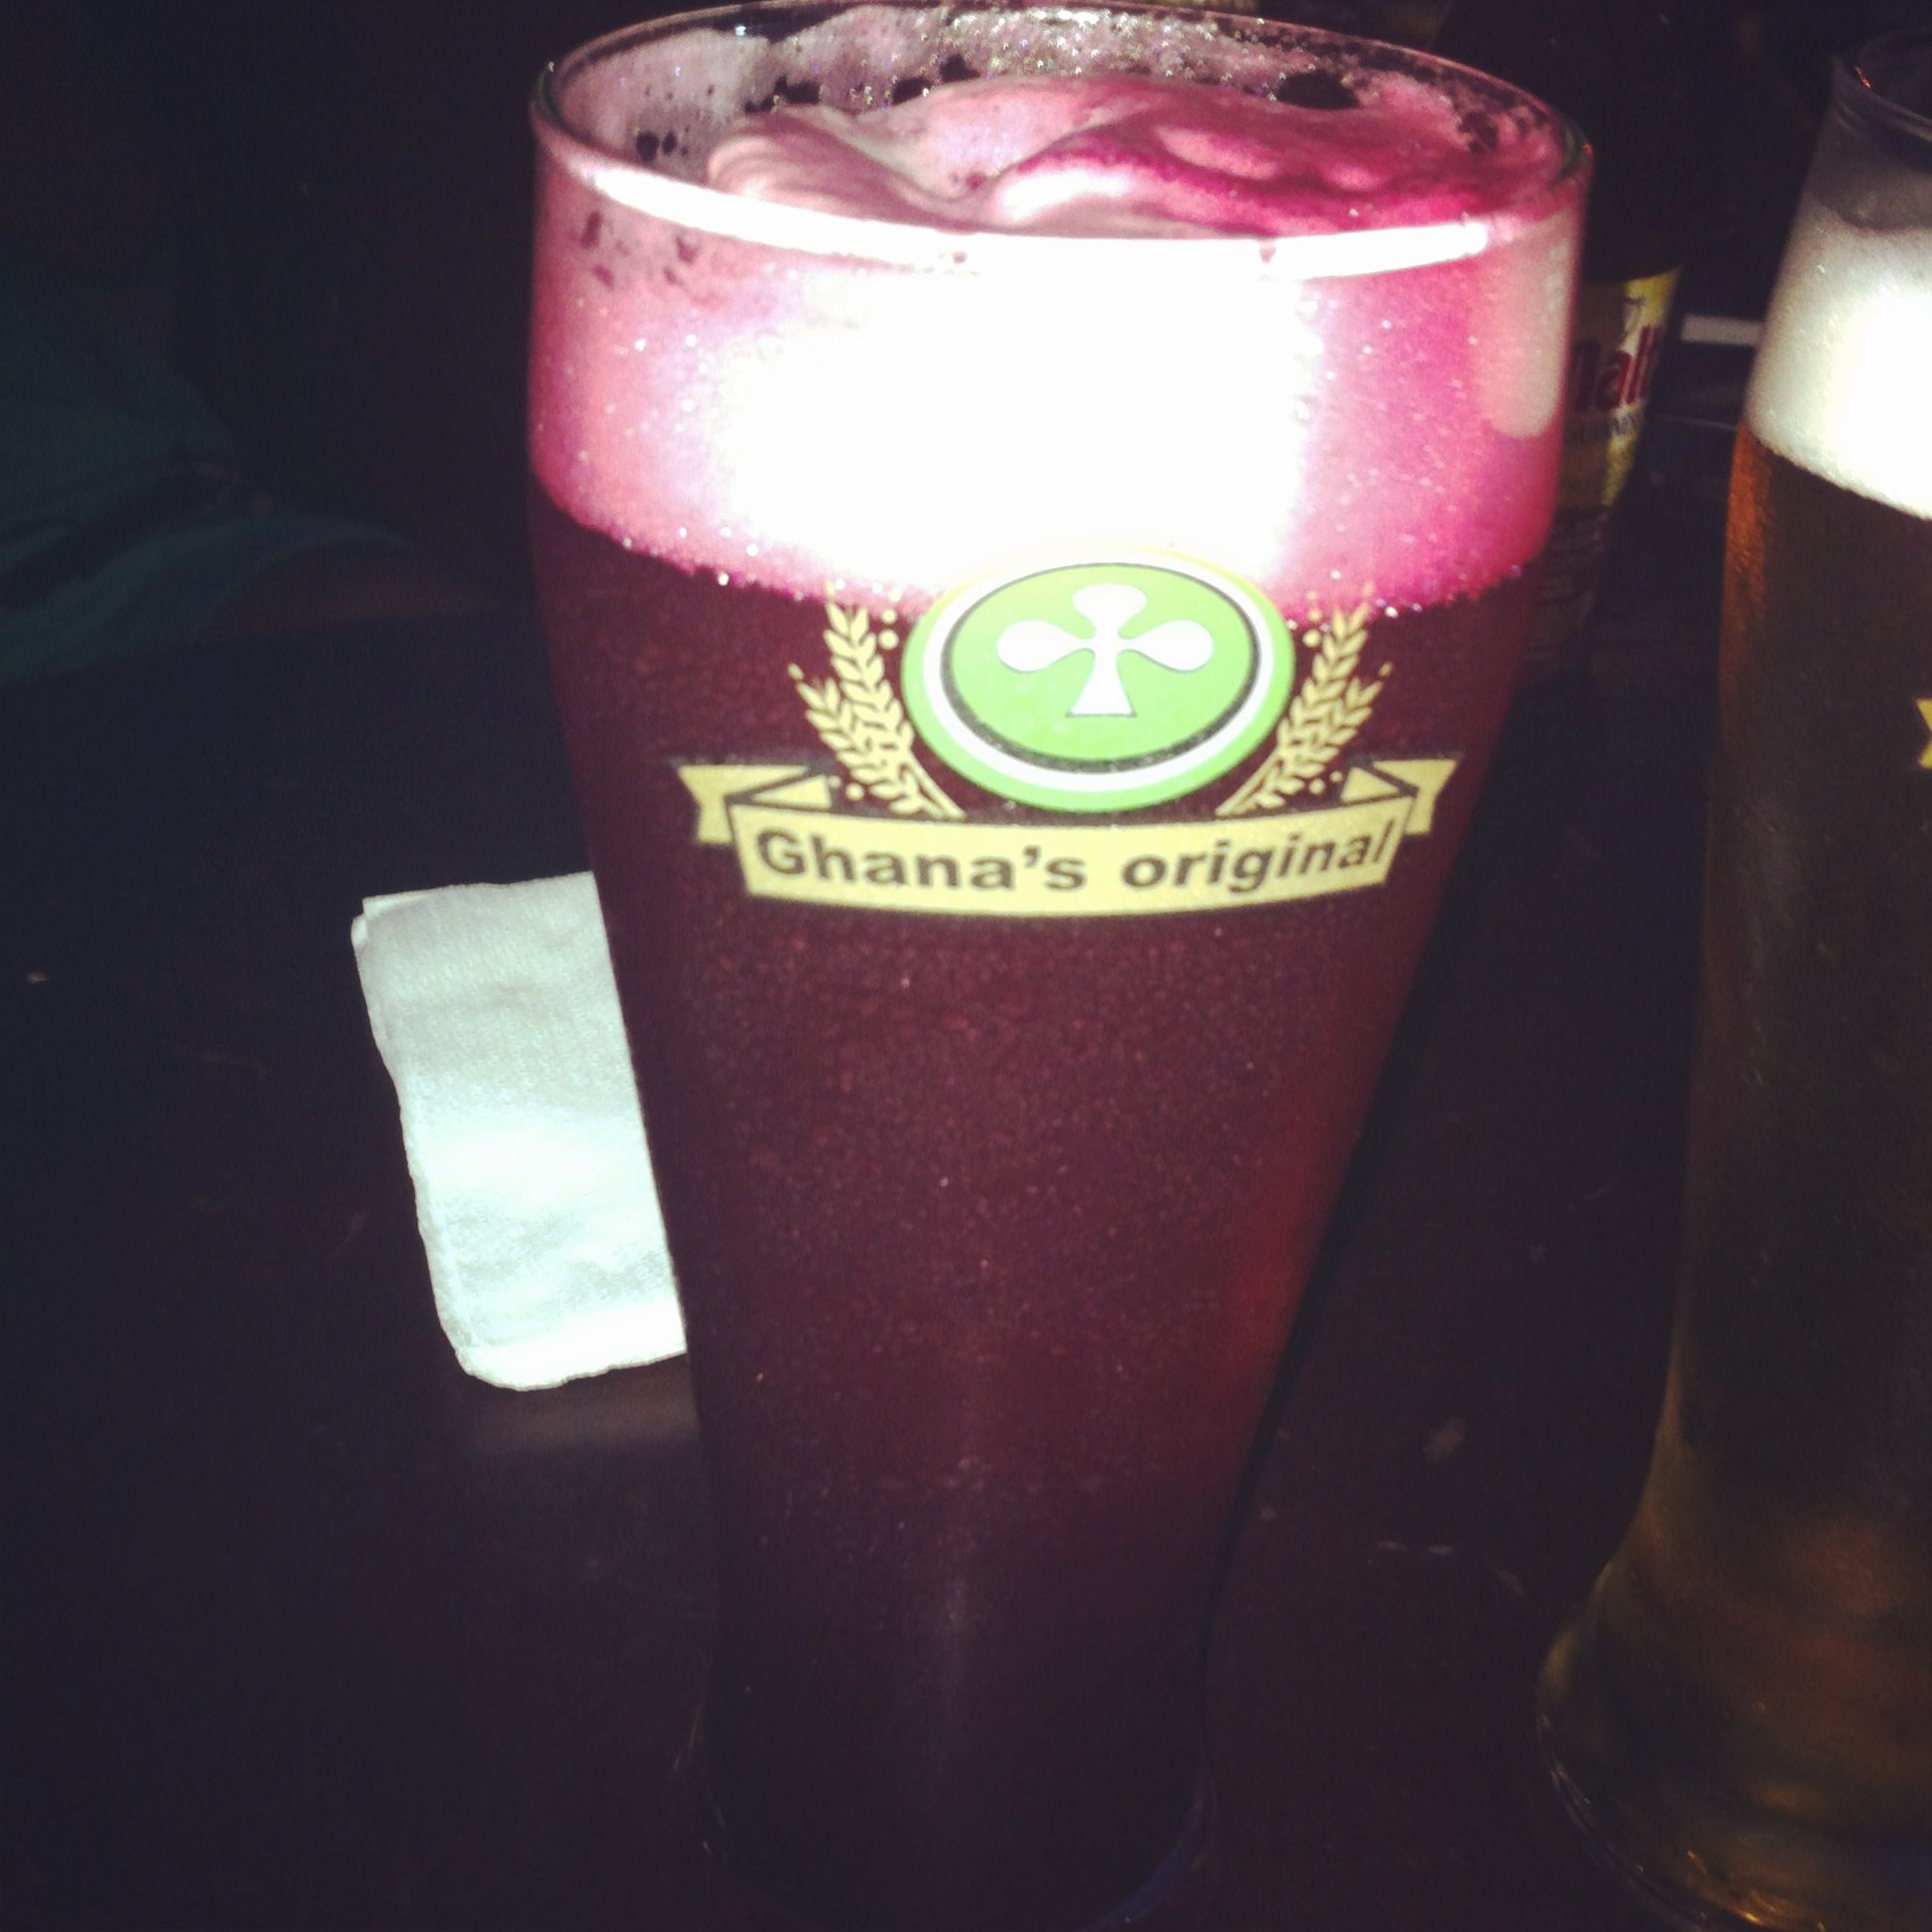 I'm not the biggest beer drinker but I am in love with this sorrel/bissap/sobolo/hibiscus flowers beer! (from The Republic bar in Osu, Ghana)  Unique, local, semi-sweet and refreshing!